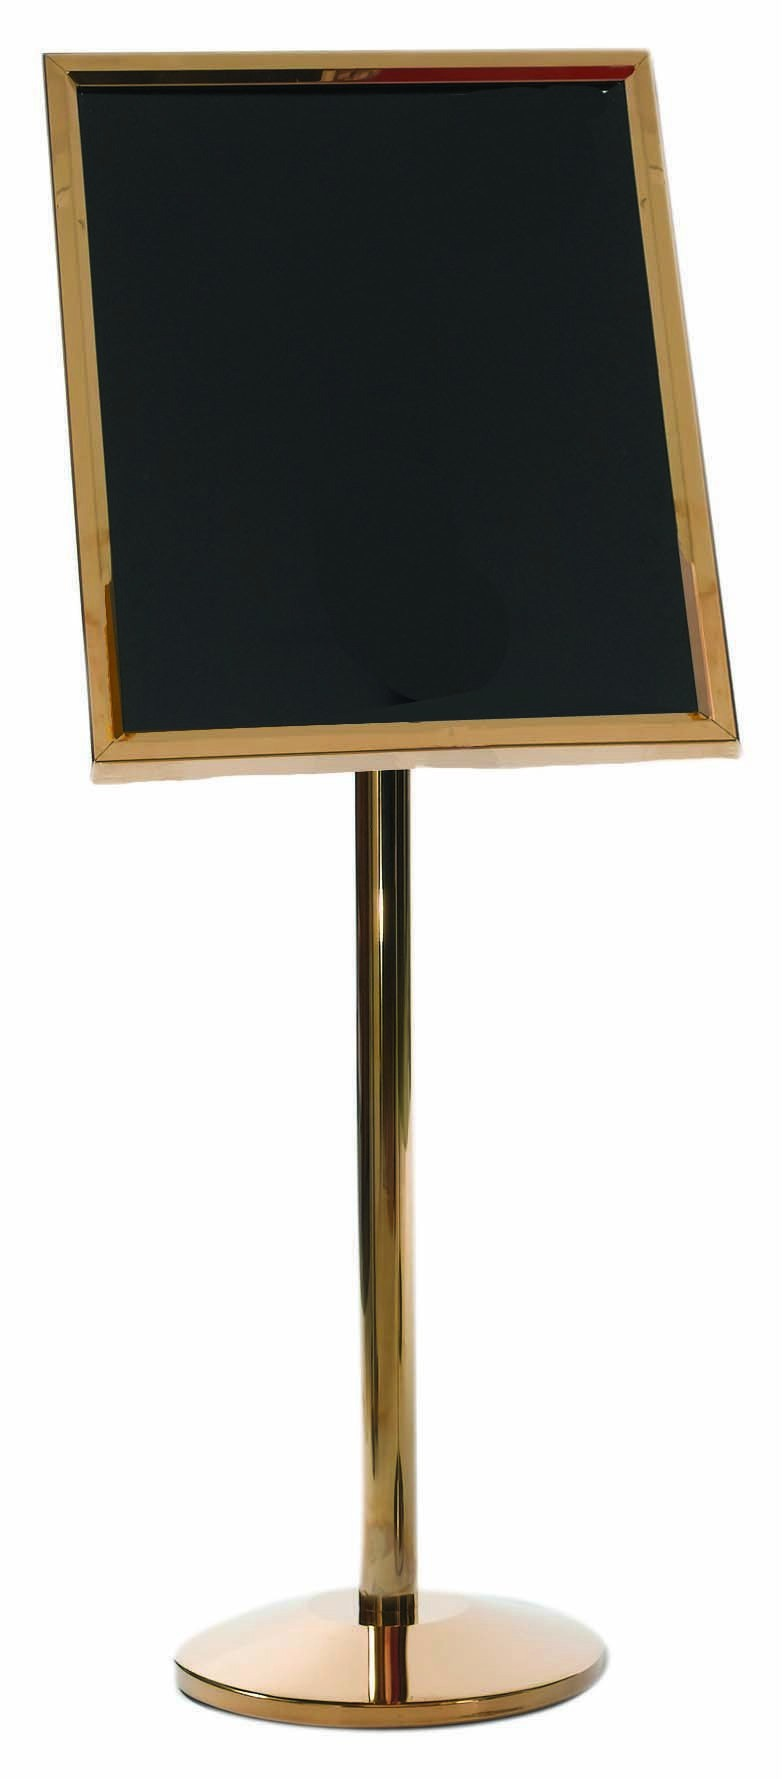 Aarco Products P-5B Single Pedestal Broadcaster- Brass Frame with Menu Holder